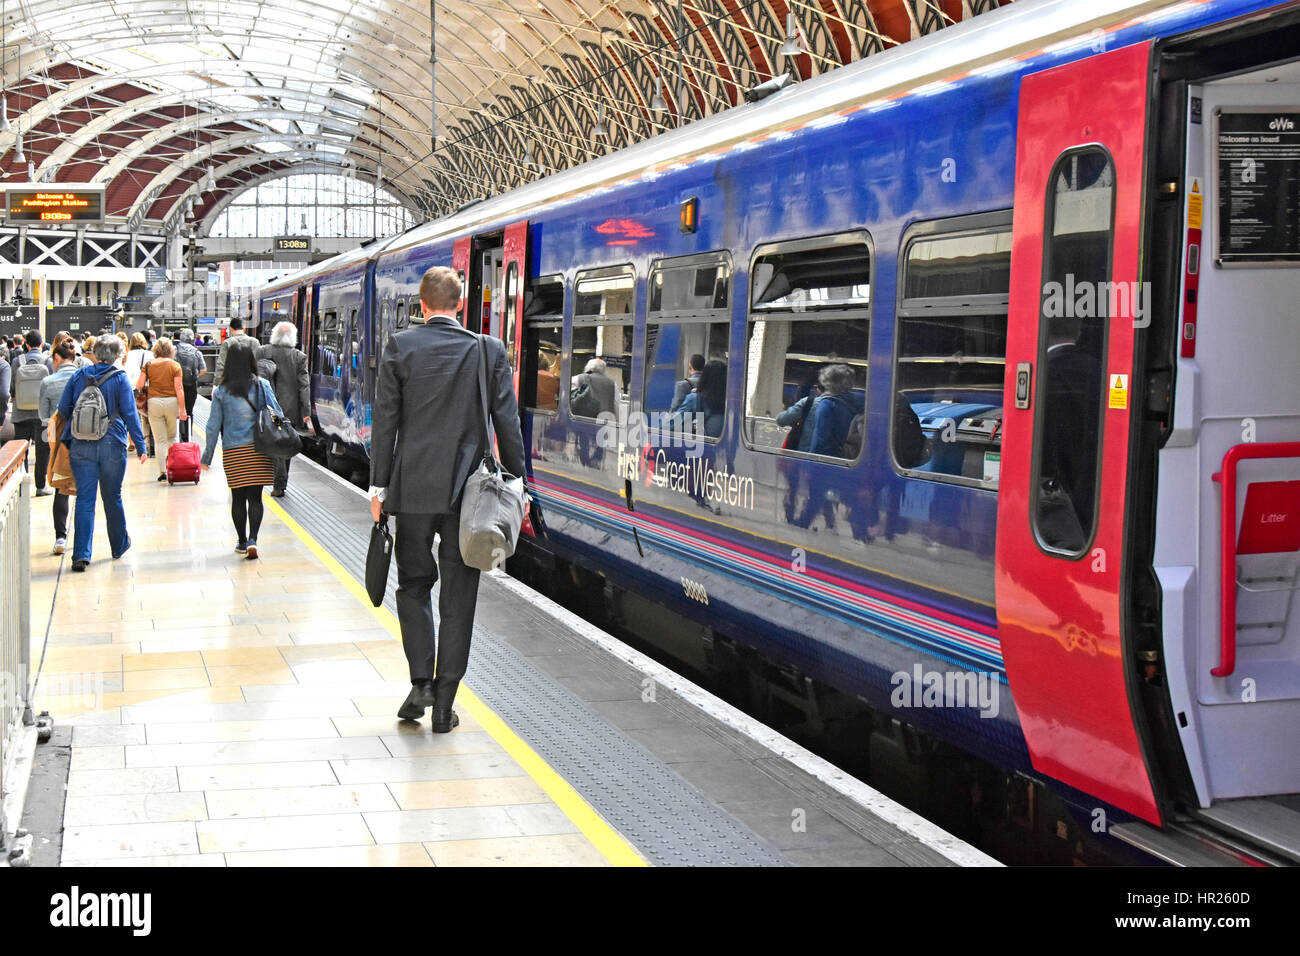 Firstgroup First Great Western train service arrived at Paddington station London UK train platform passengers disembark - Stock Image